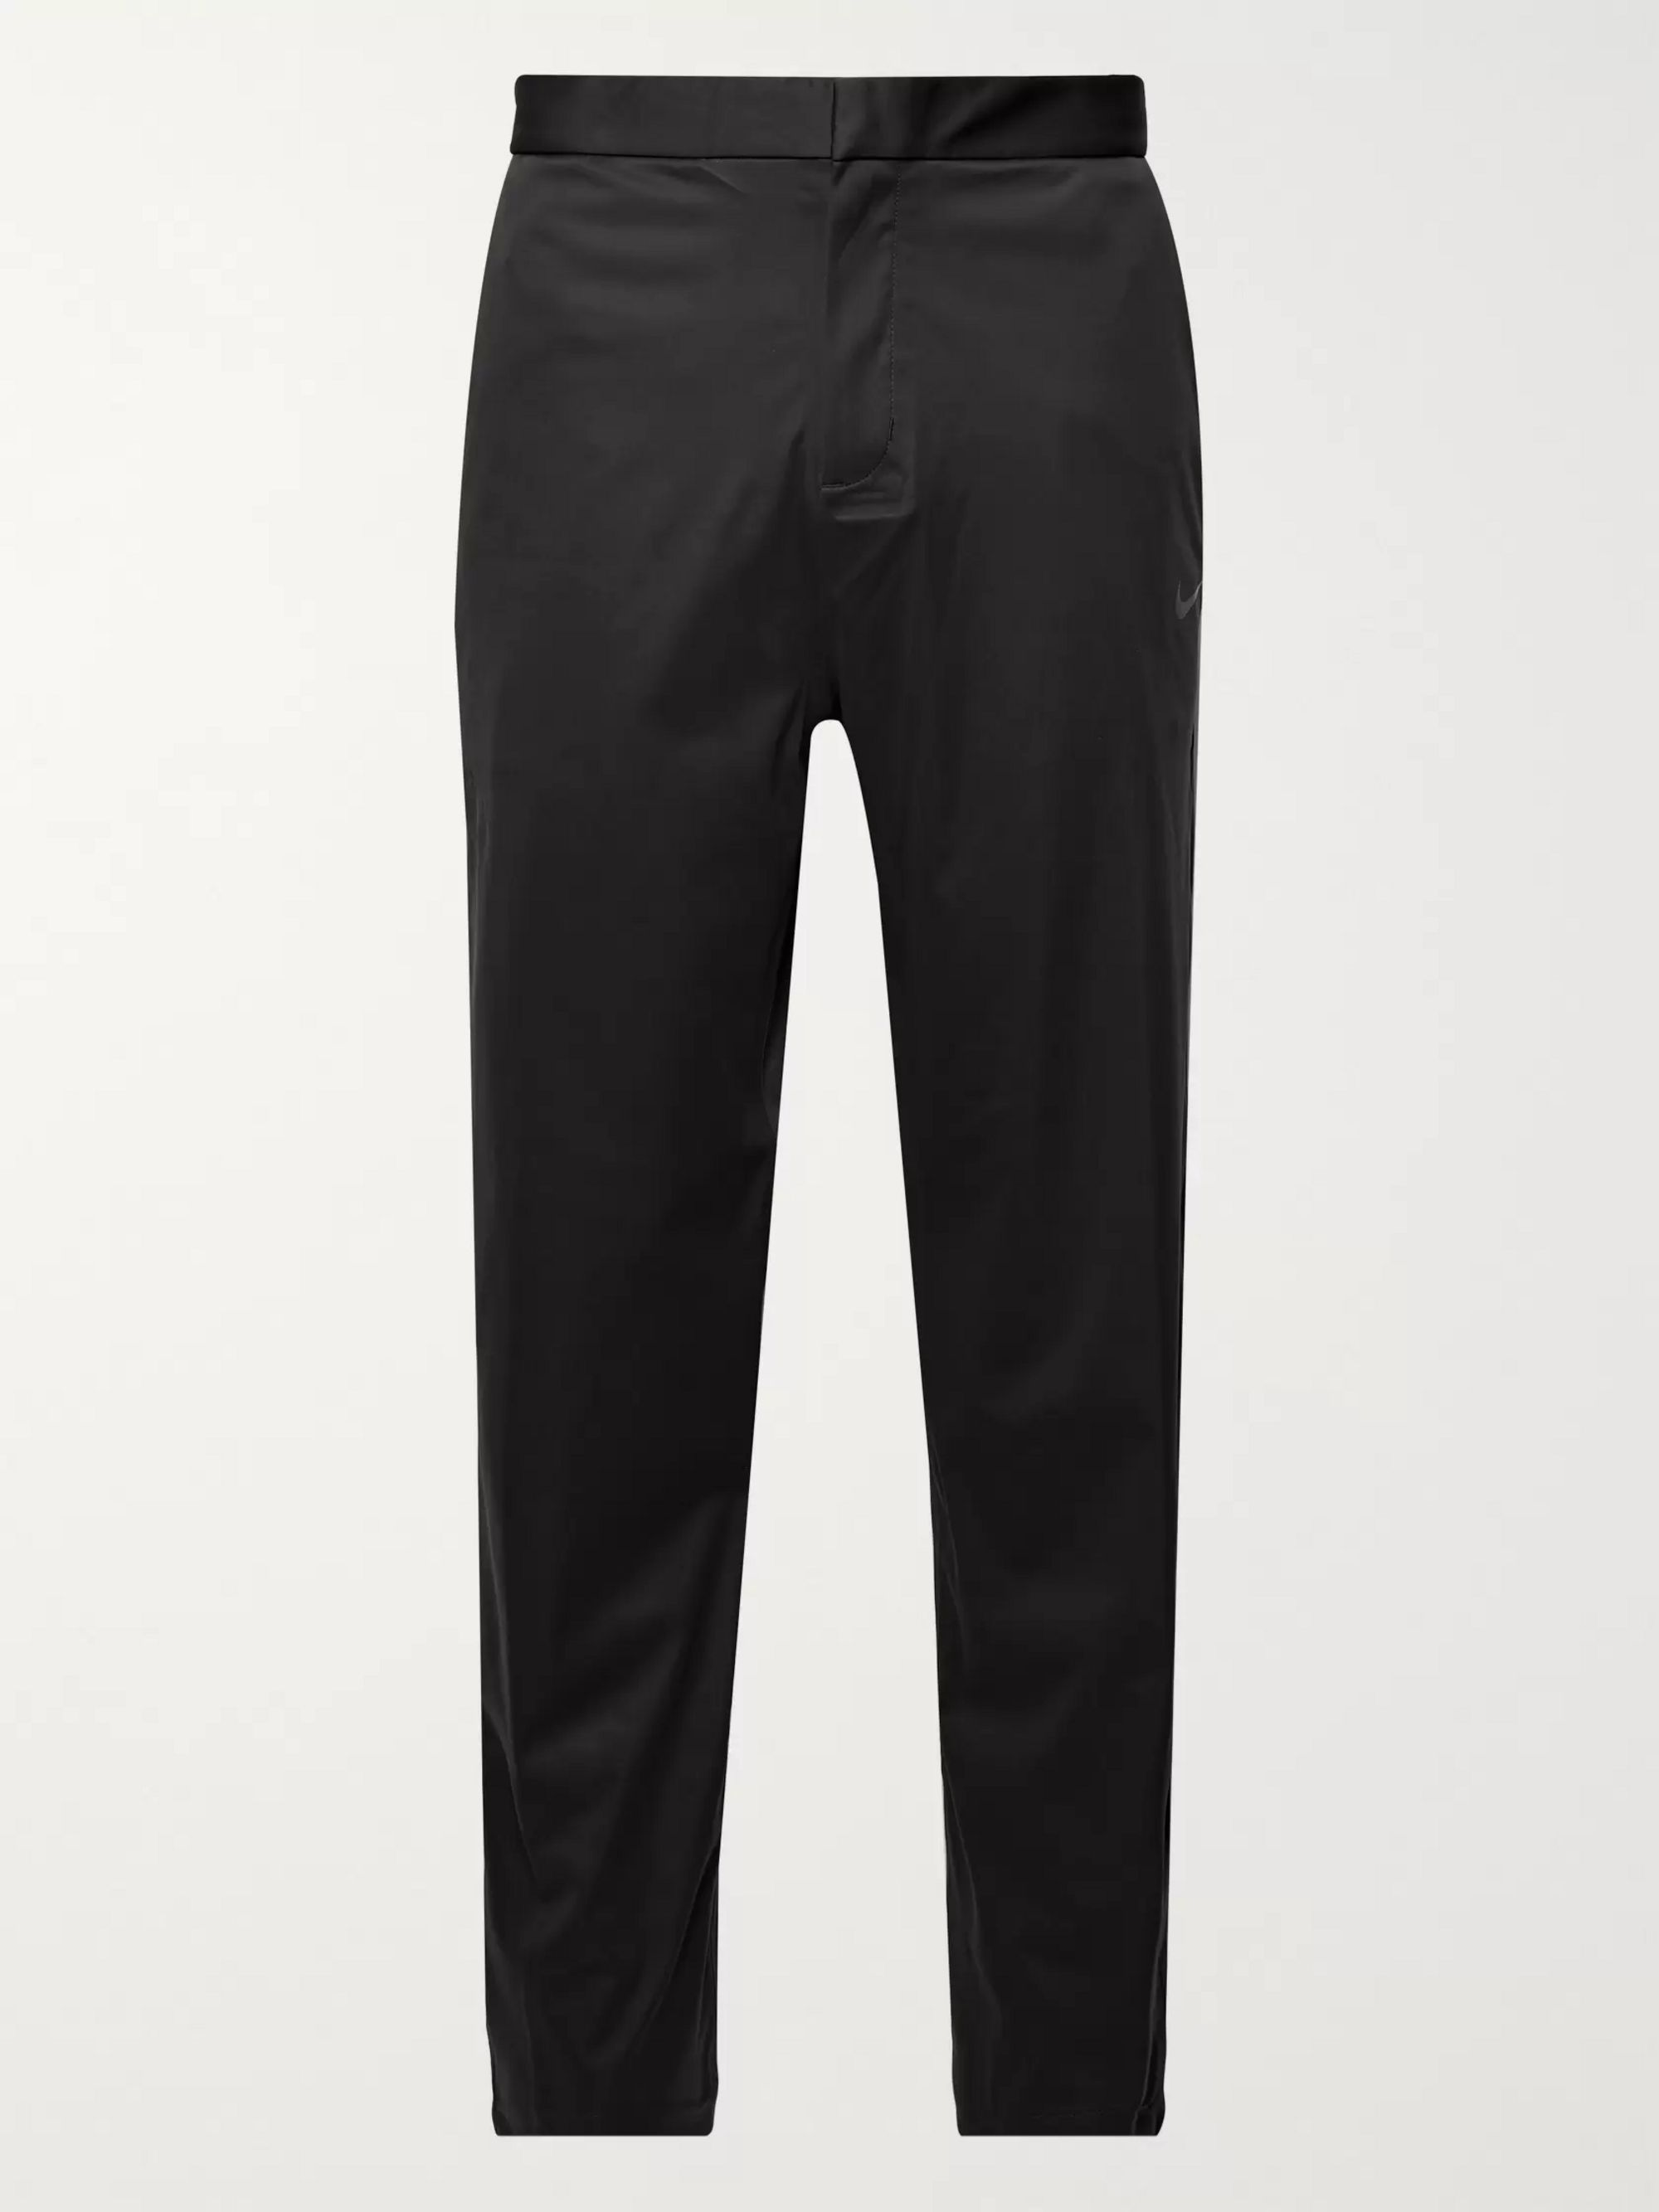 Nike Golf AeroShield Golf Trousers